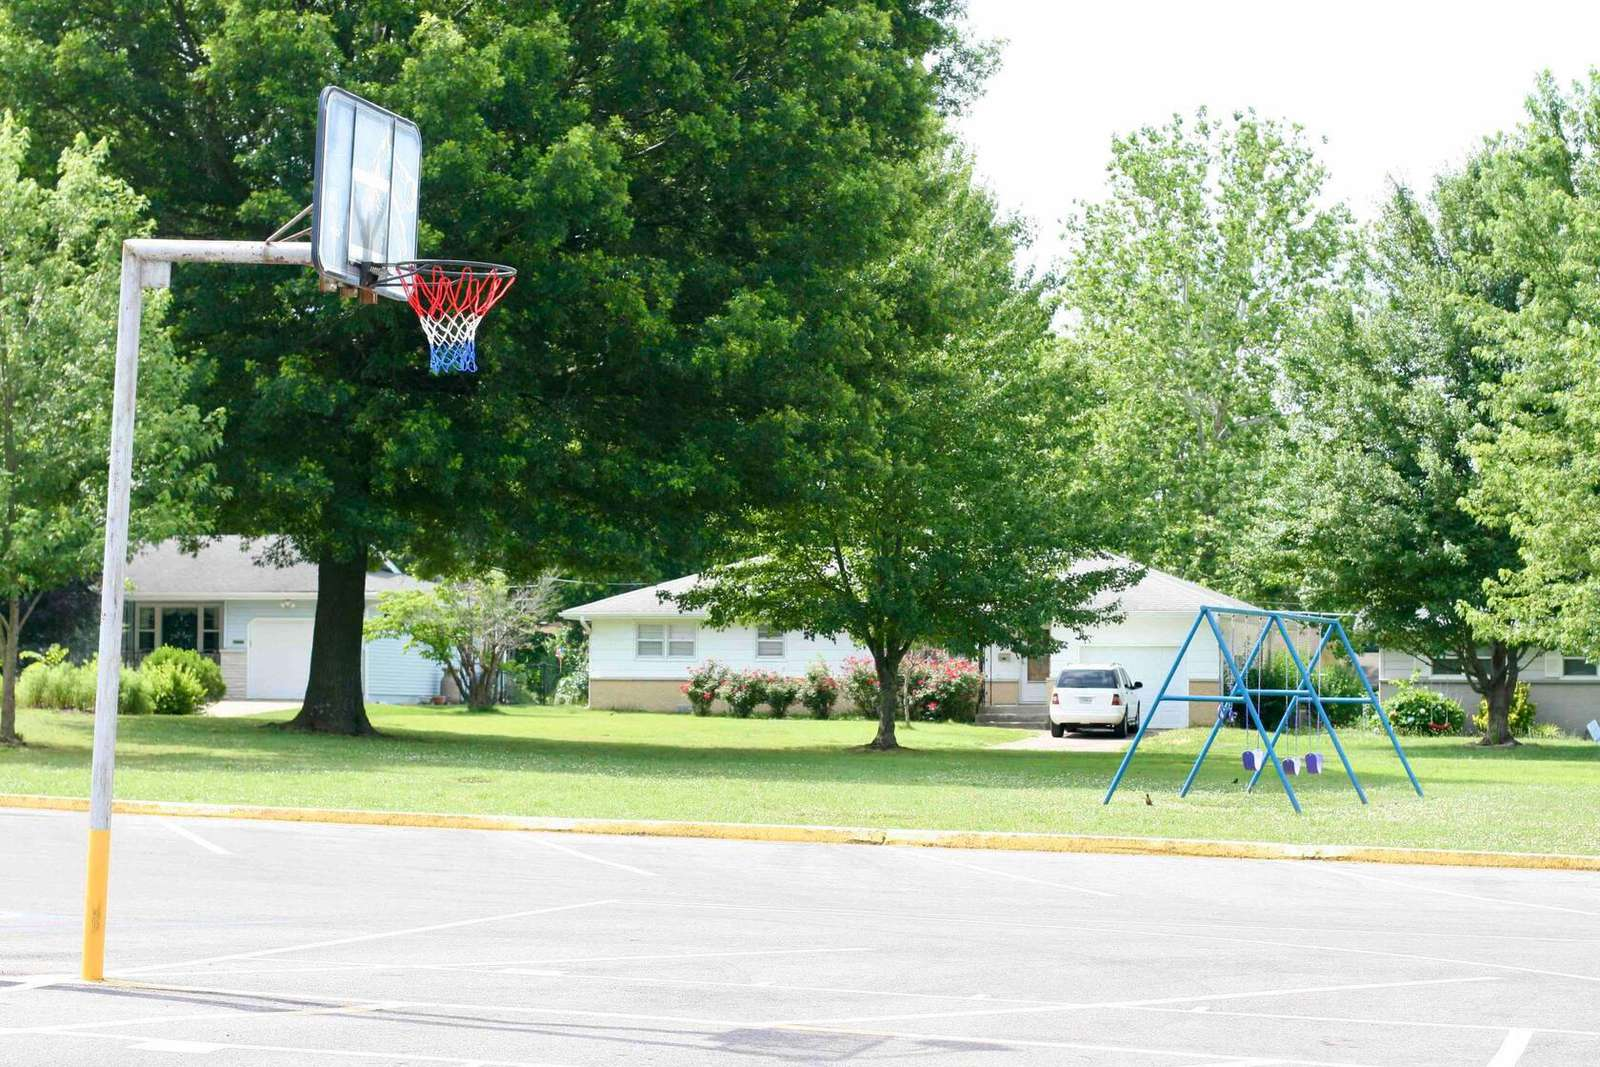 Basketball court directly across the street